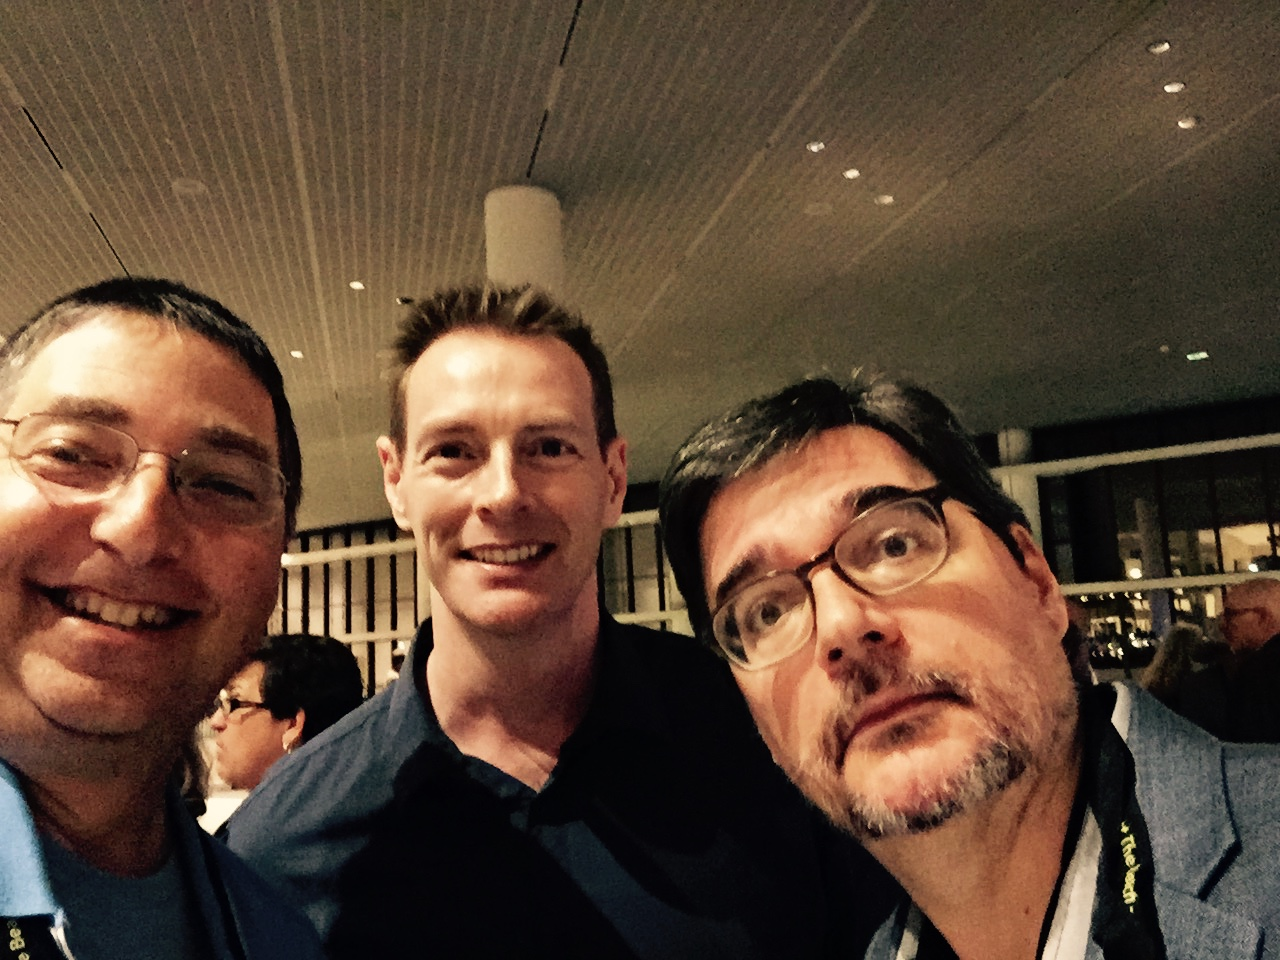 The Co-Authors club: Lee Goldberg, Boyd Morrison, and Phoef Sutton at Bouchercon 2014